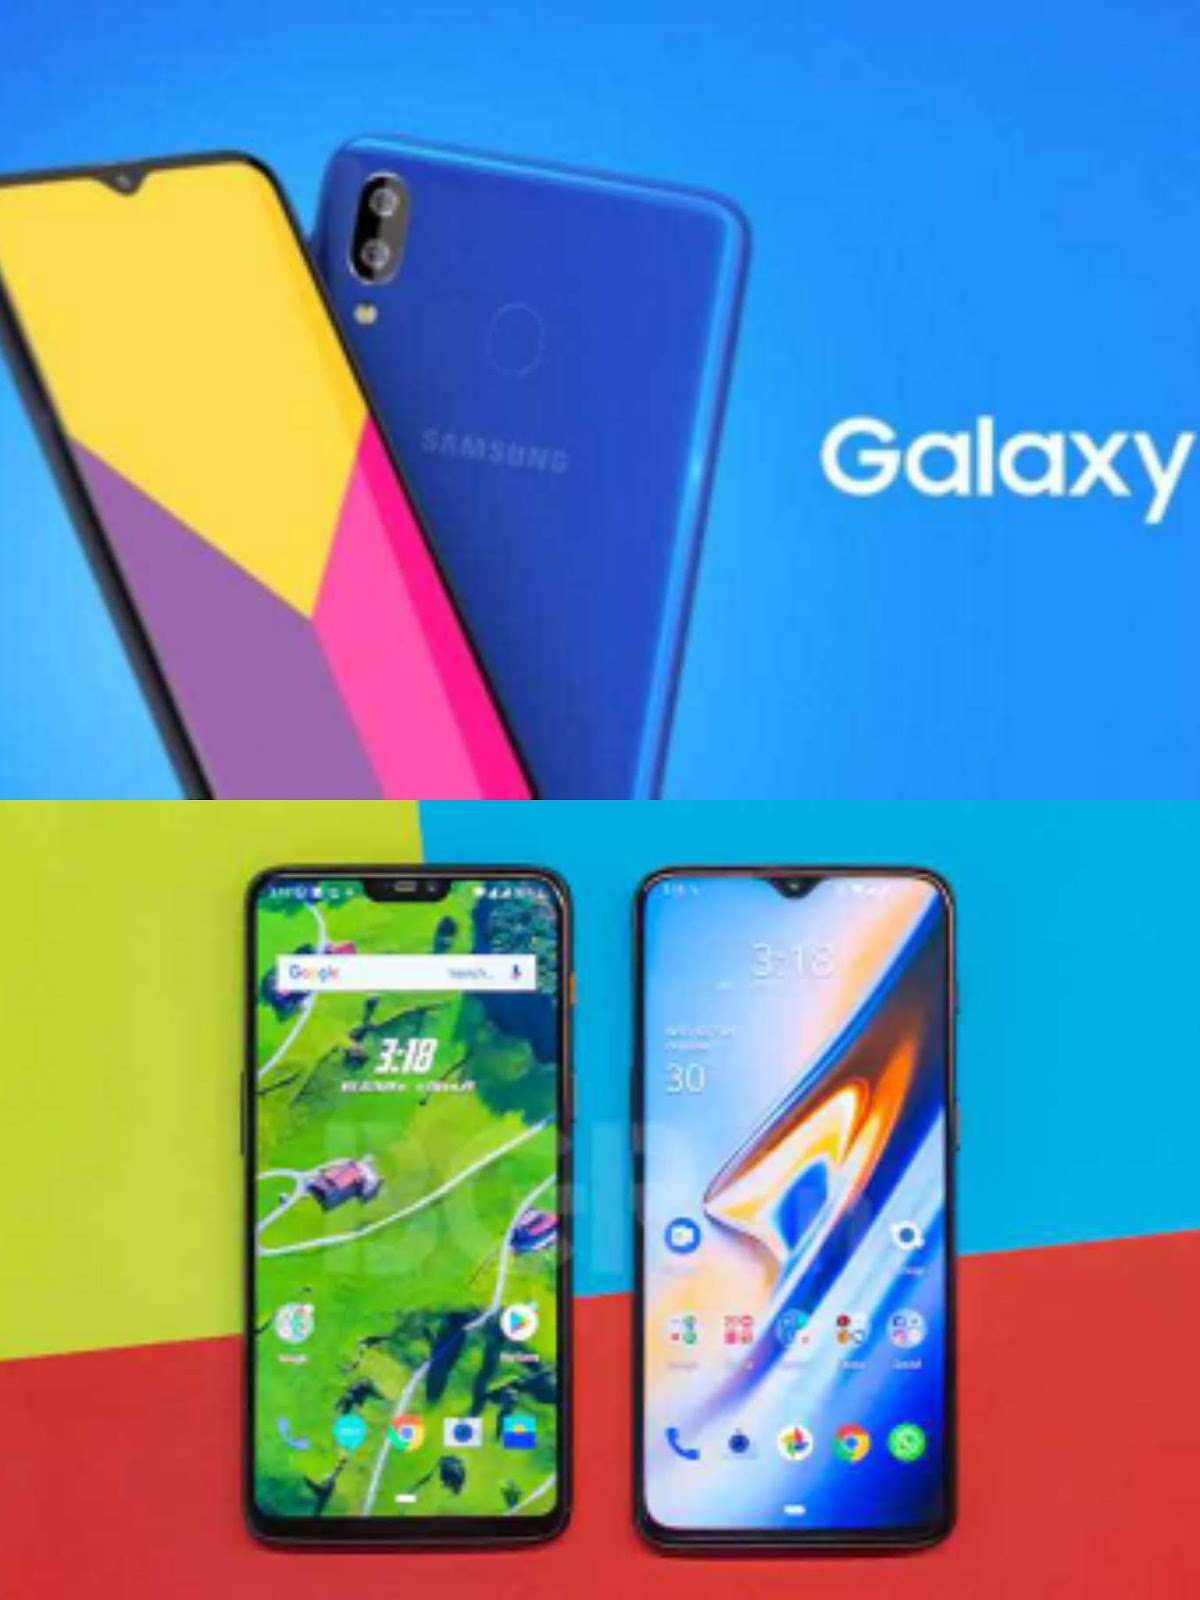 Samsung Galaxy M21 Specifications, OnePlus 6 and OnePlus 6T received update OxygenOS 10.3.1. - Mobiles & Networks